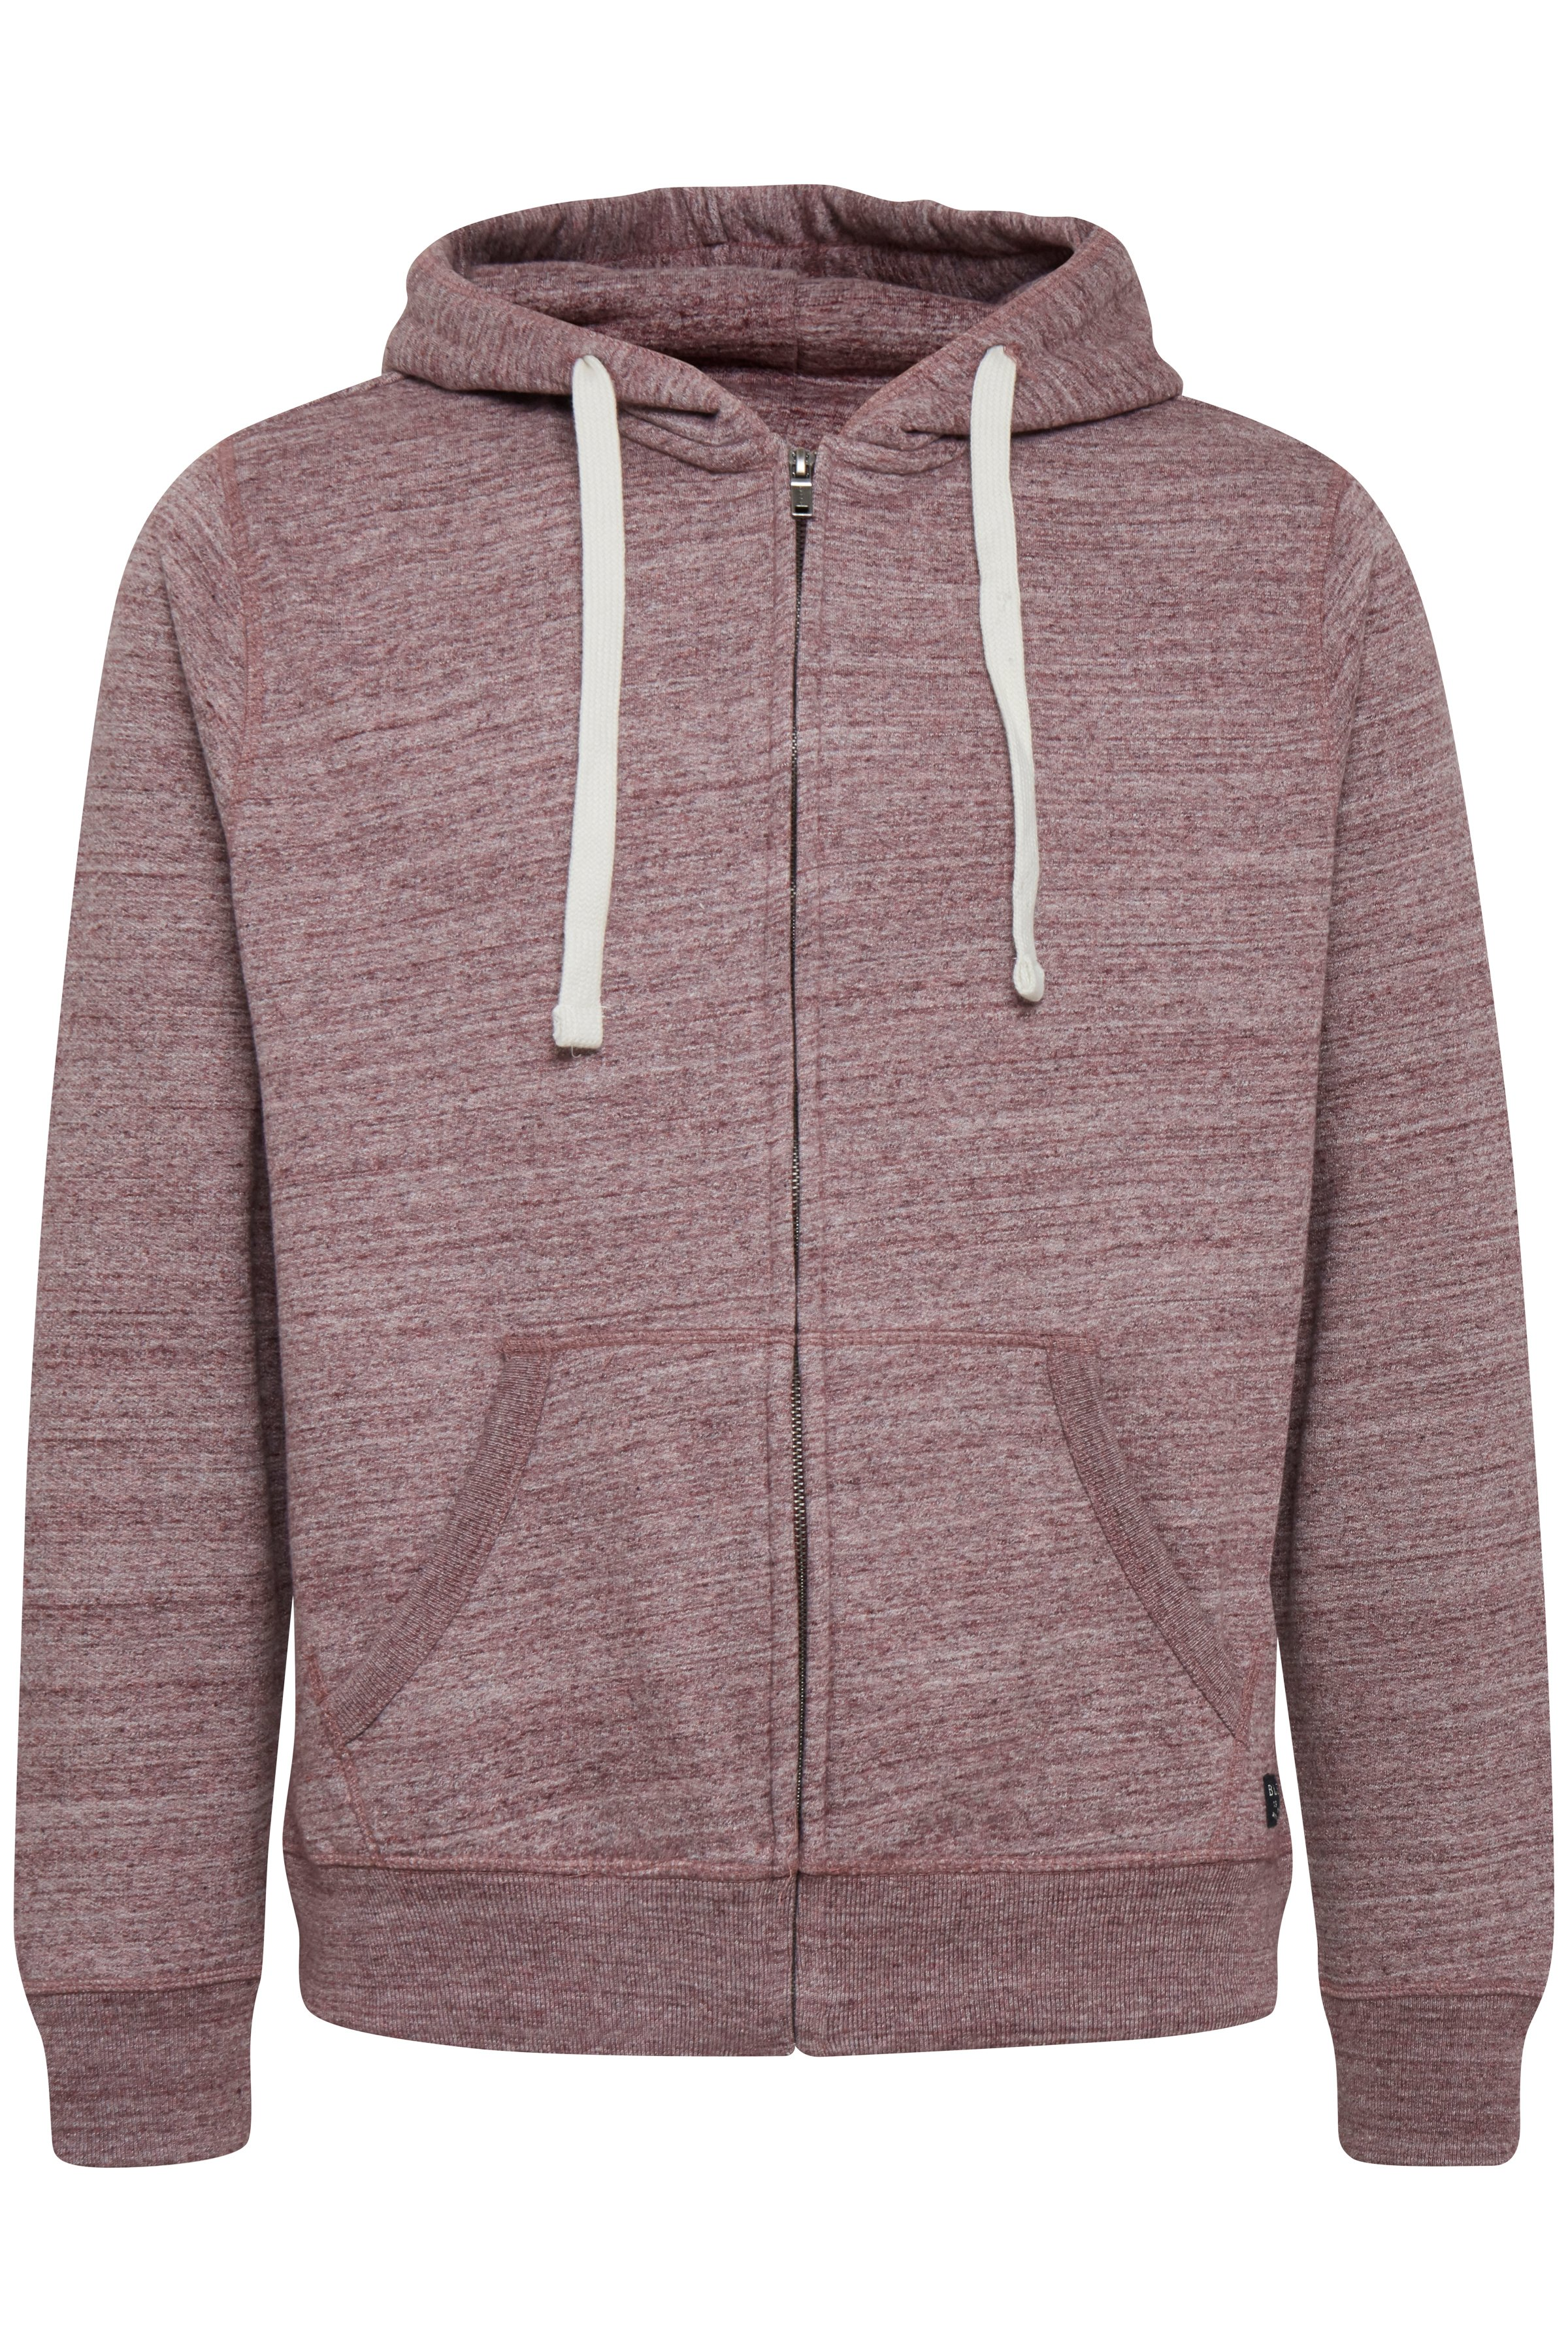 Wine red Hooded blouse with zipper fra Blend He – Køb Wine red Hooded blouse with zipper fra str. S-3XL her